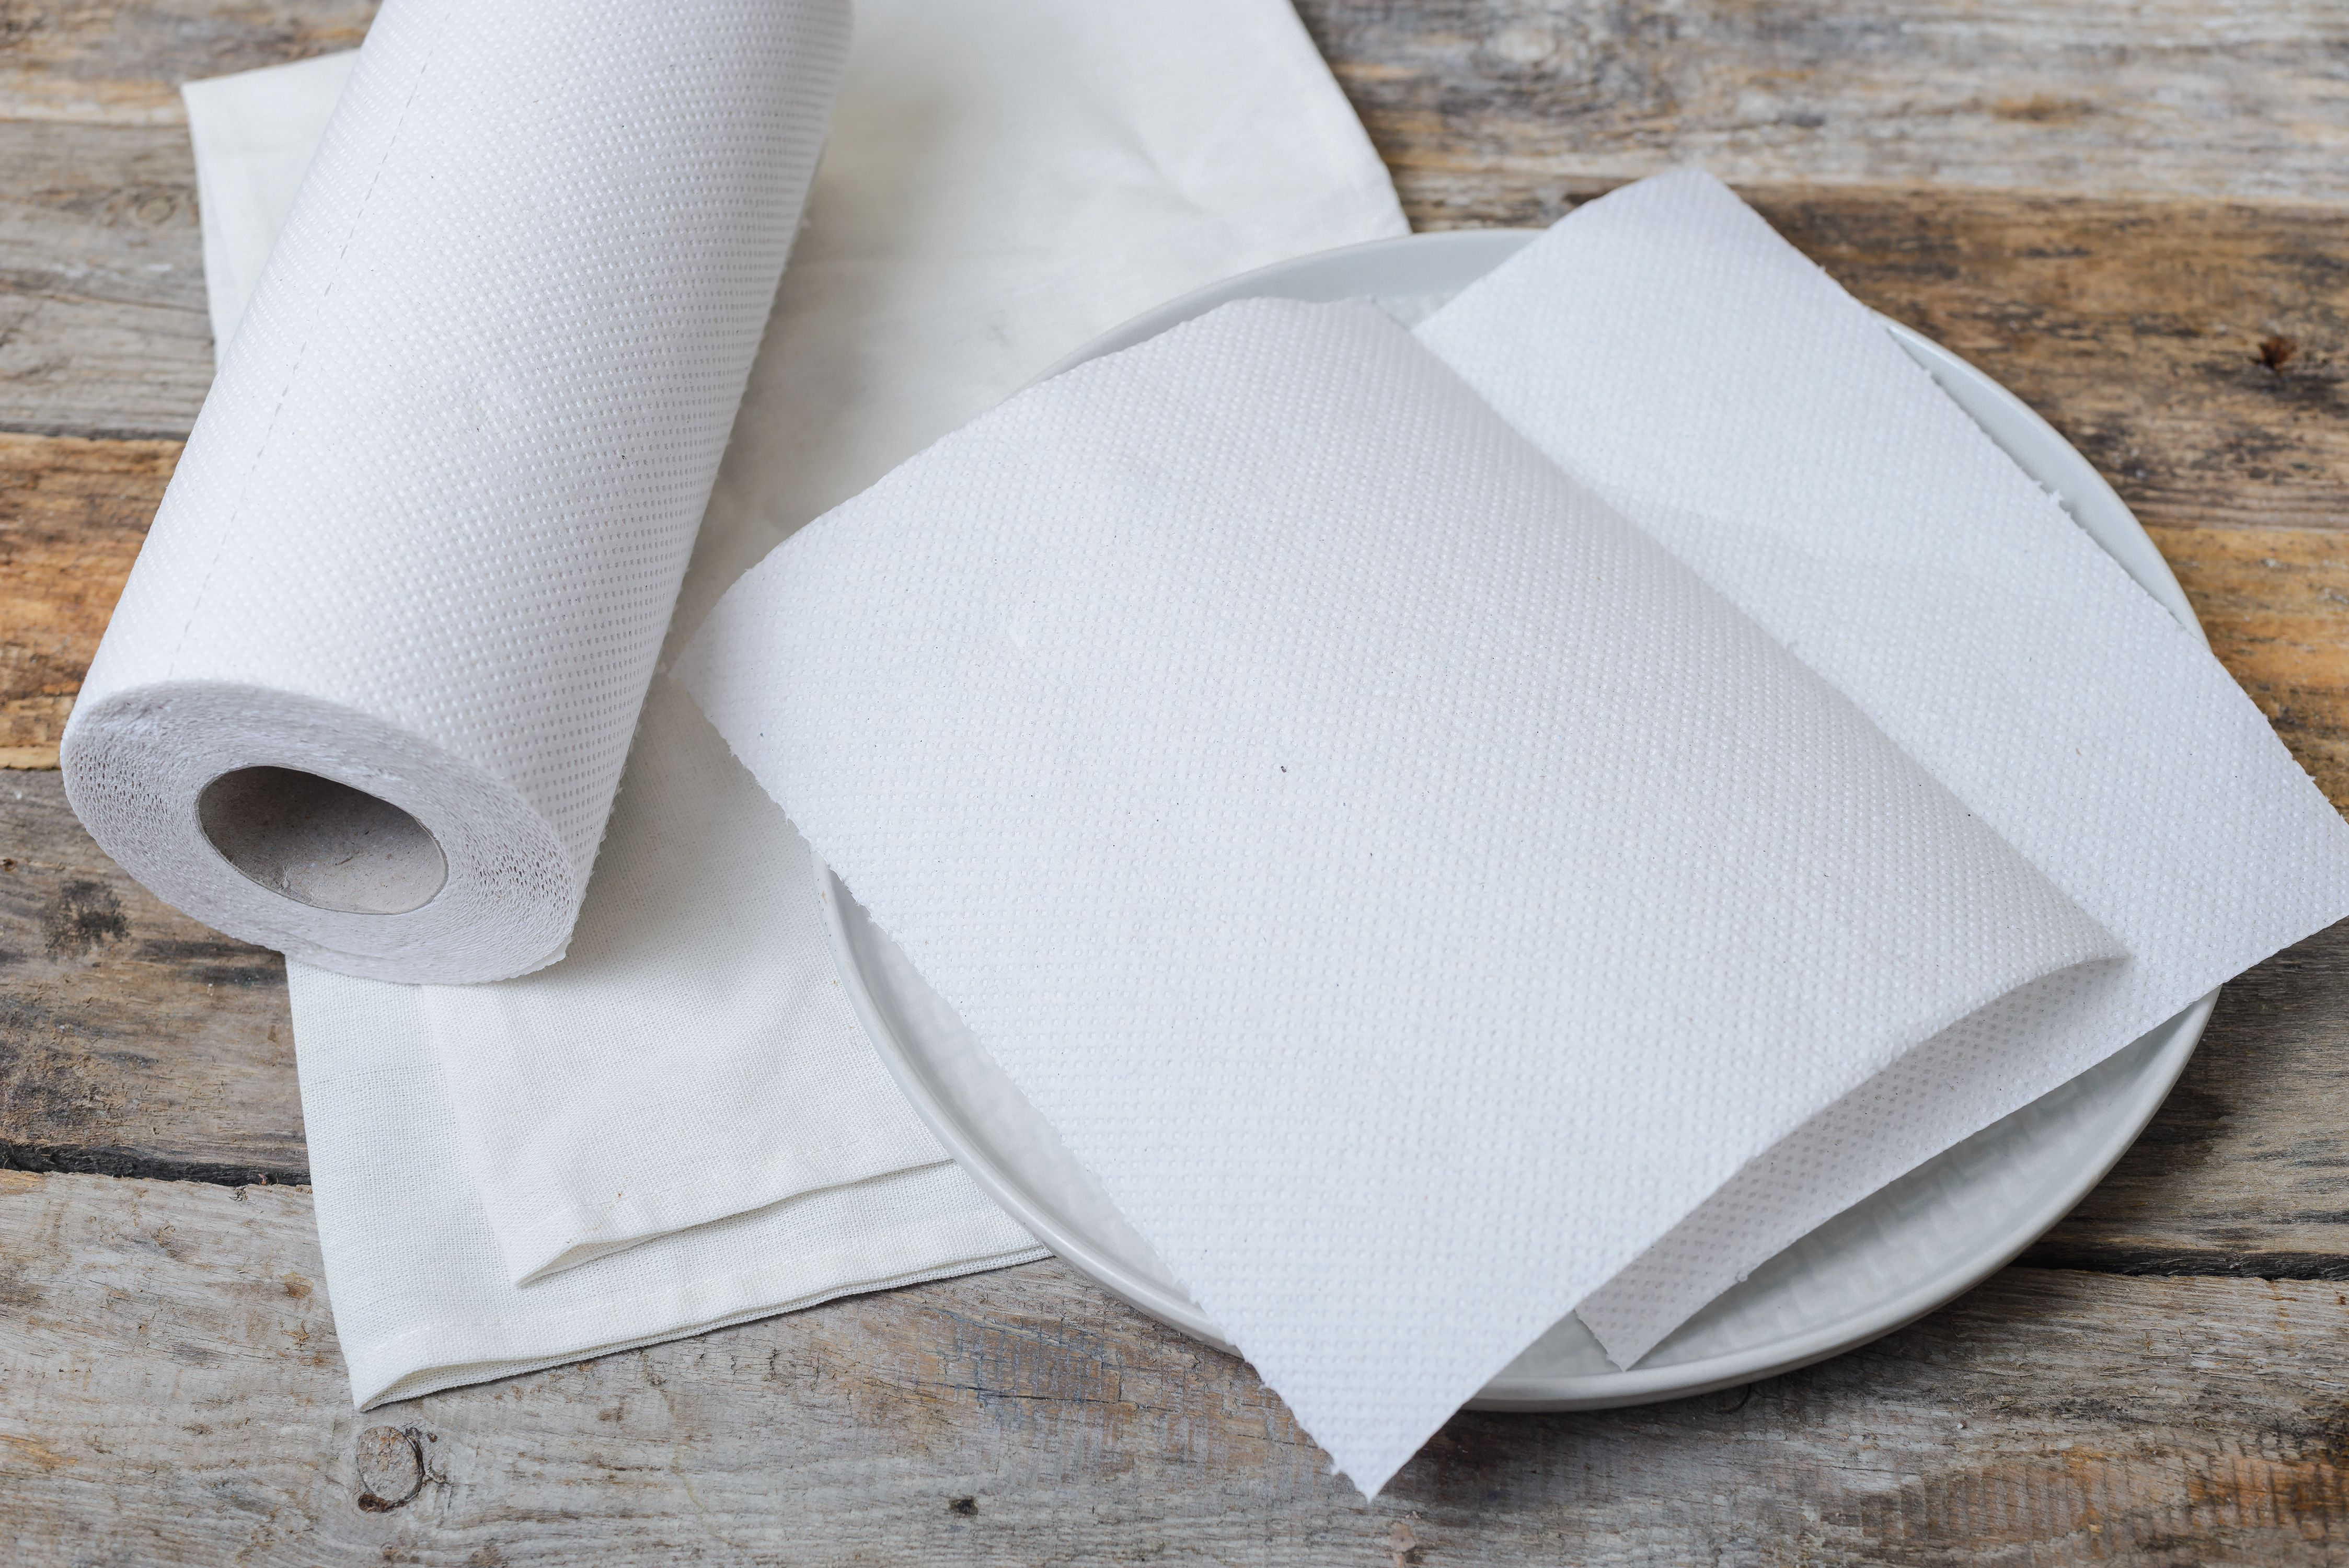 Line a plate with paper towels